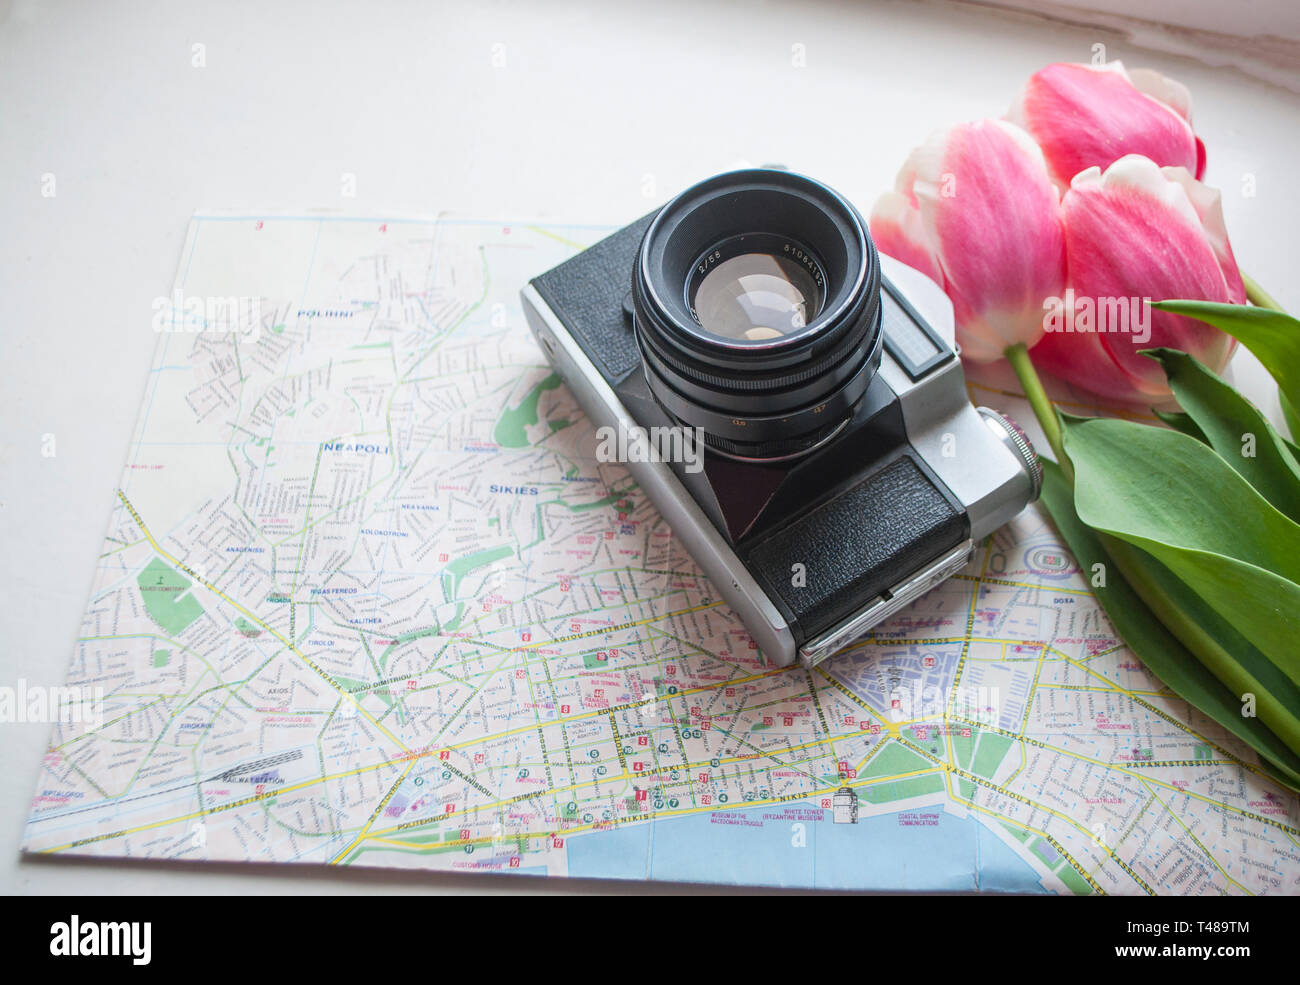 Flat lay of map, camera and tulips boquet. Travel concept. - Stock Image